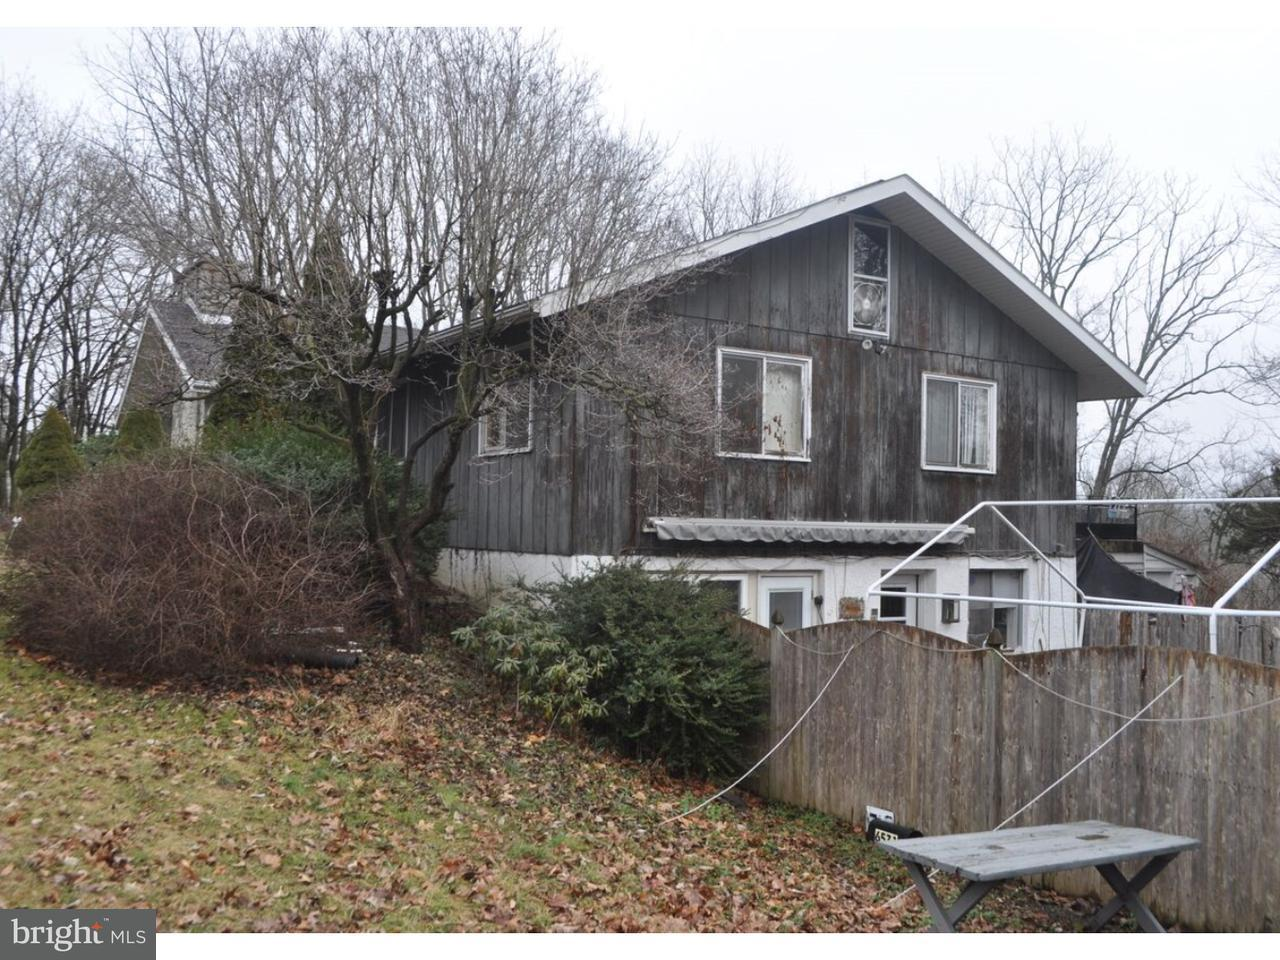 Maison unifamiliale pour l Vente à 6531 UPPER RIDGE Road Green Lane, Pennsylvanie 18054 États-Unis